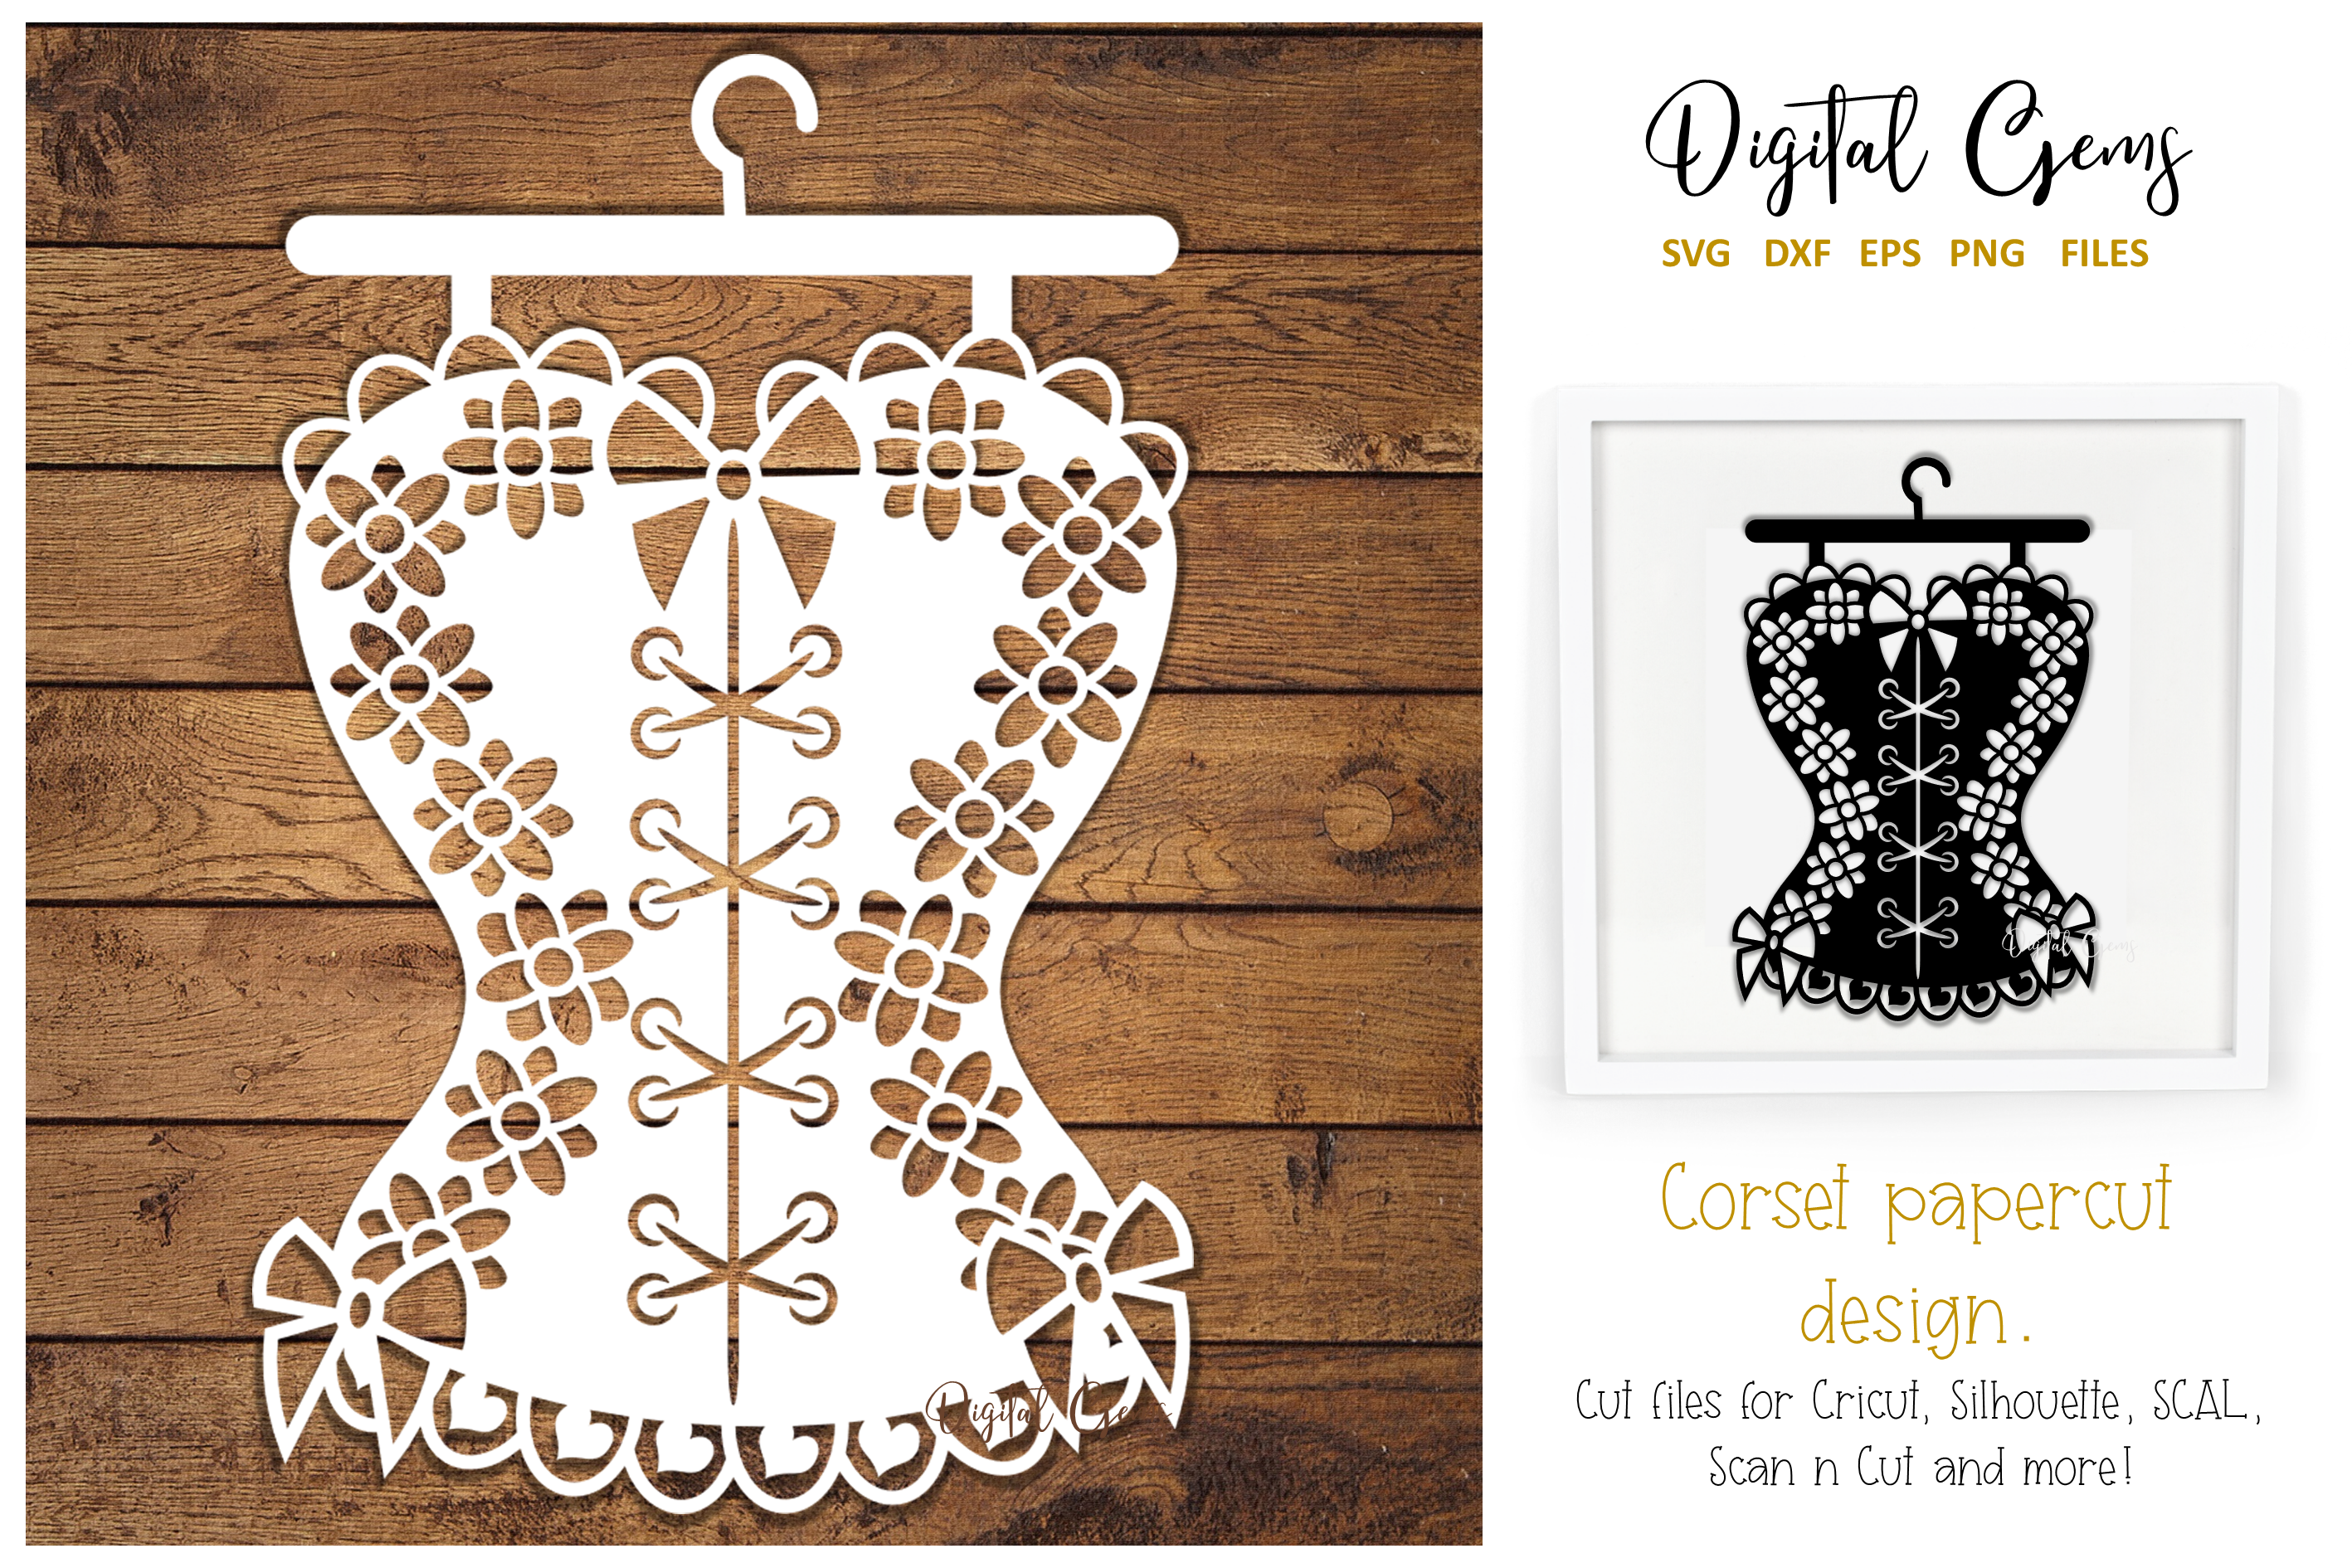 Corset paper cut design SVG / DXF / EPS / PNG files example image 1